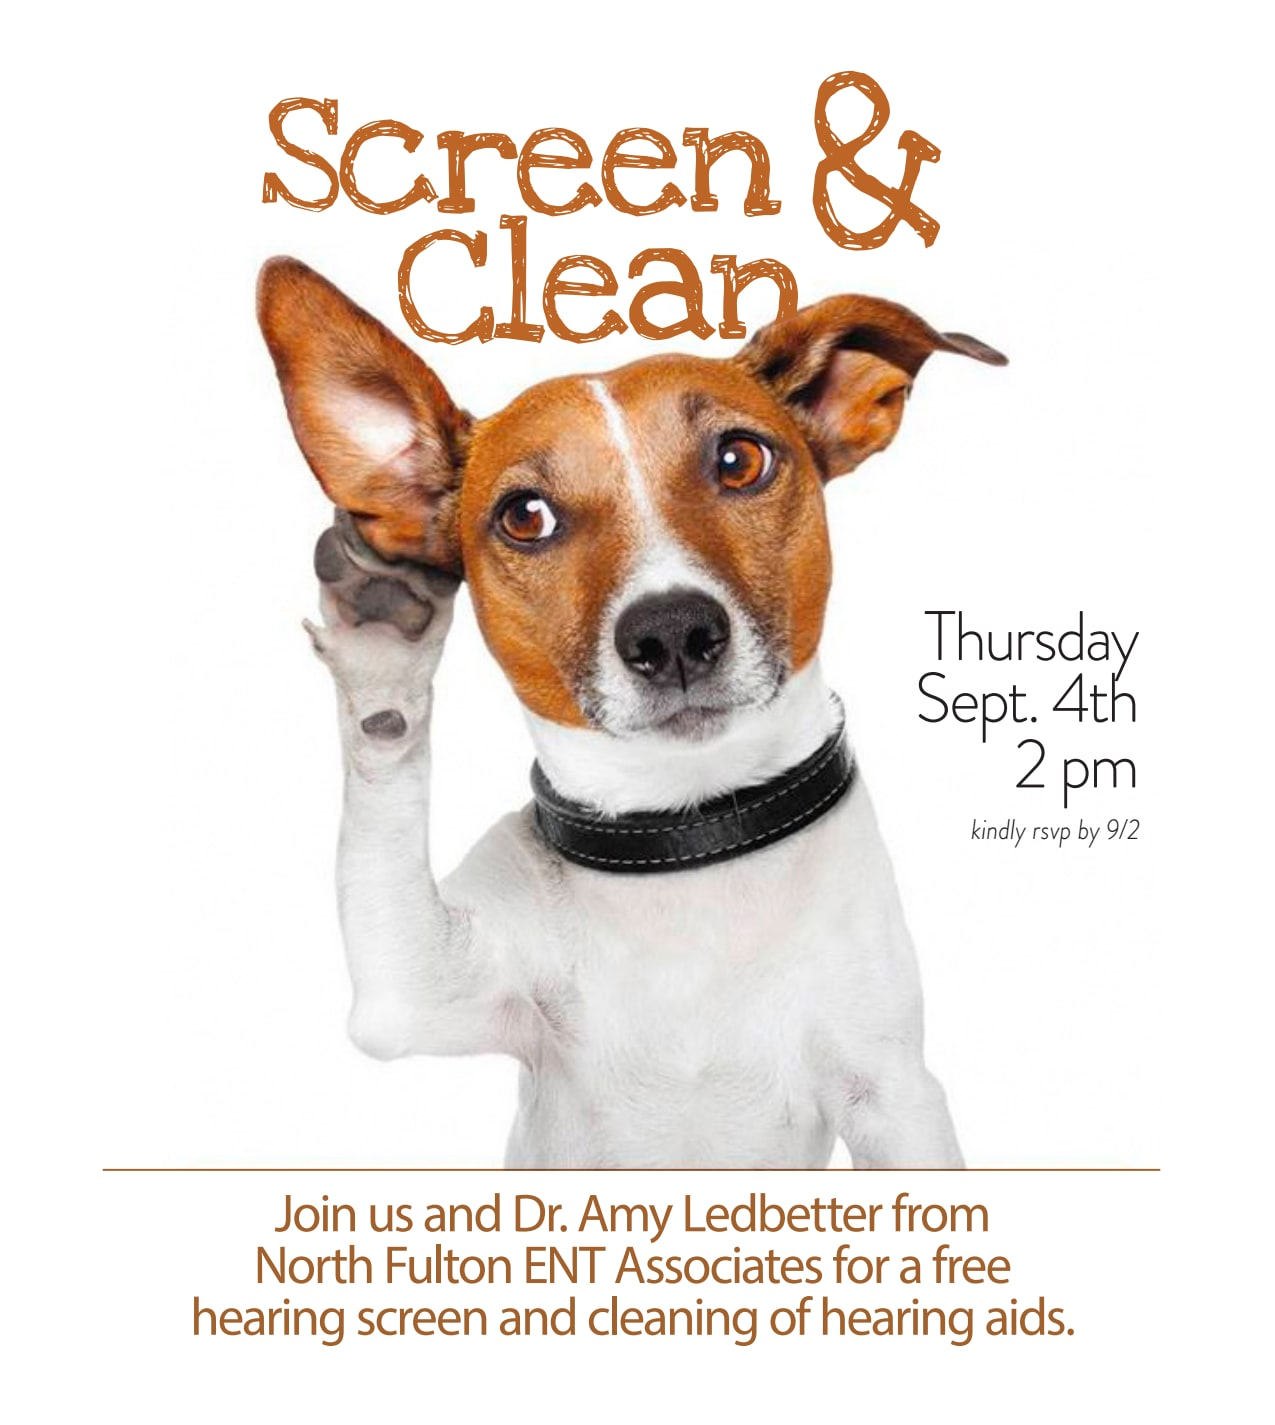 Screen & Clean - activities at Benton Village of Stockbridge in Stockbridge, GA